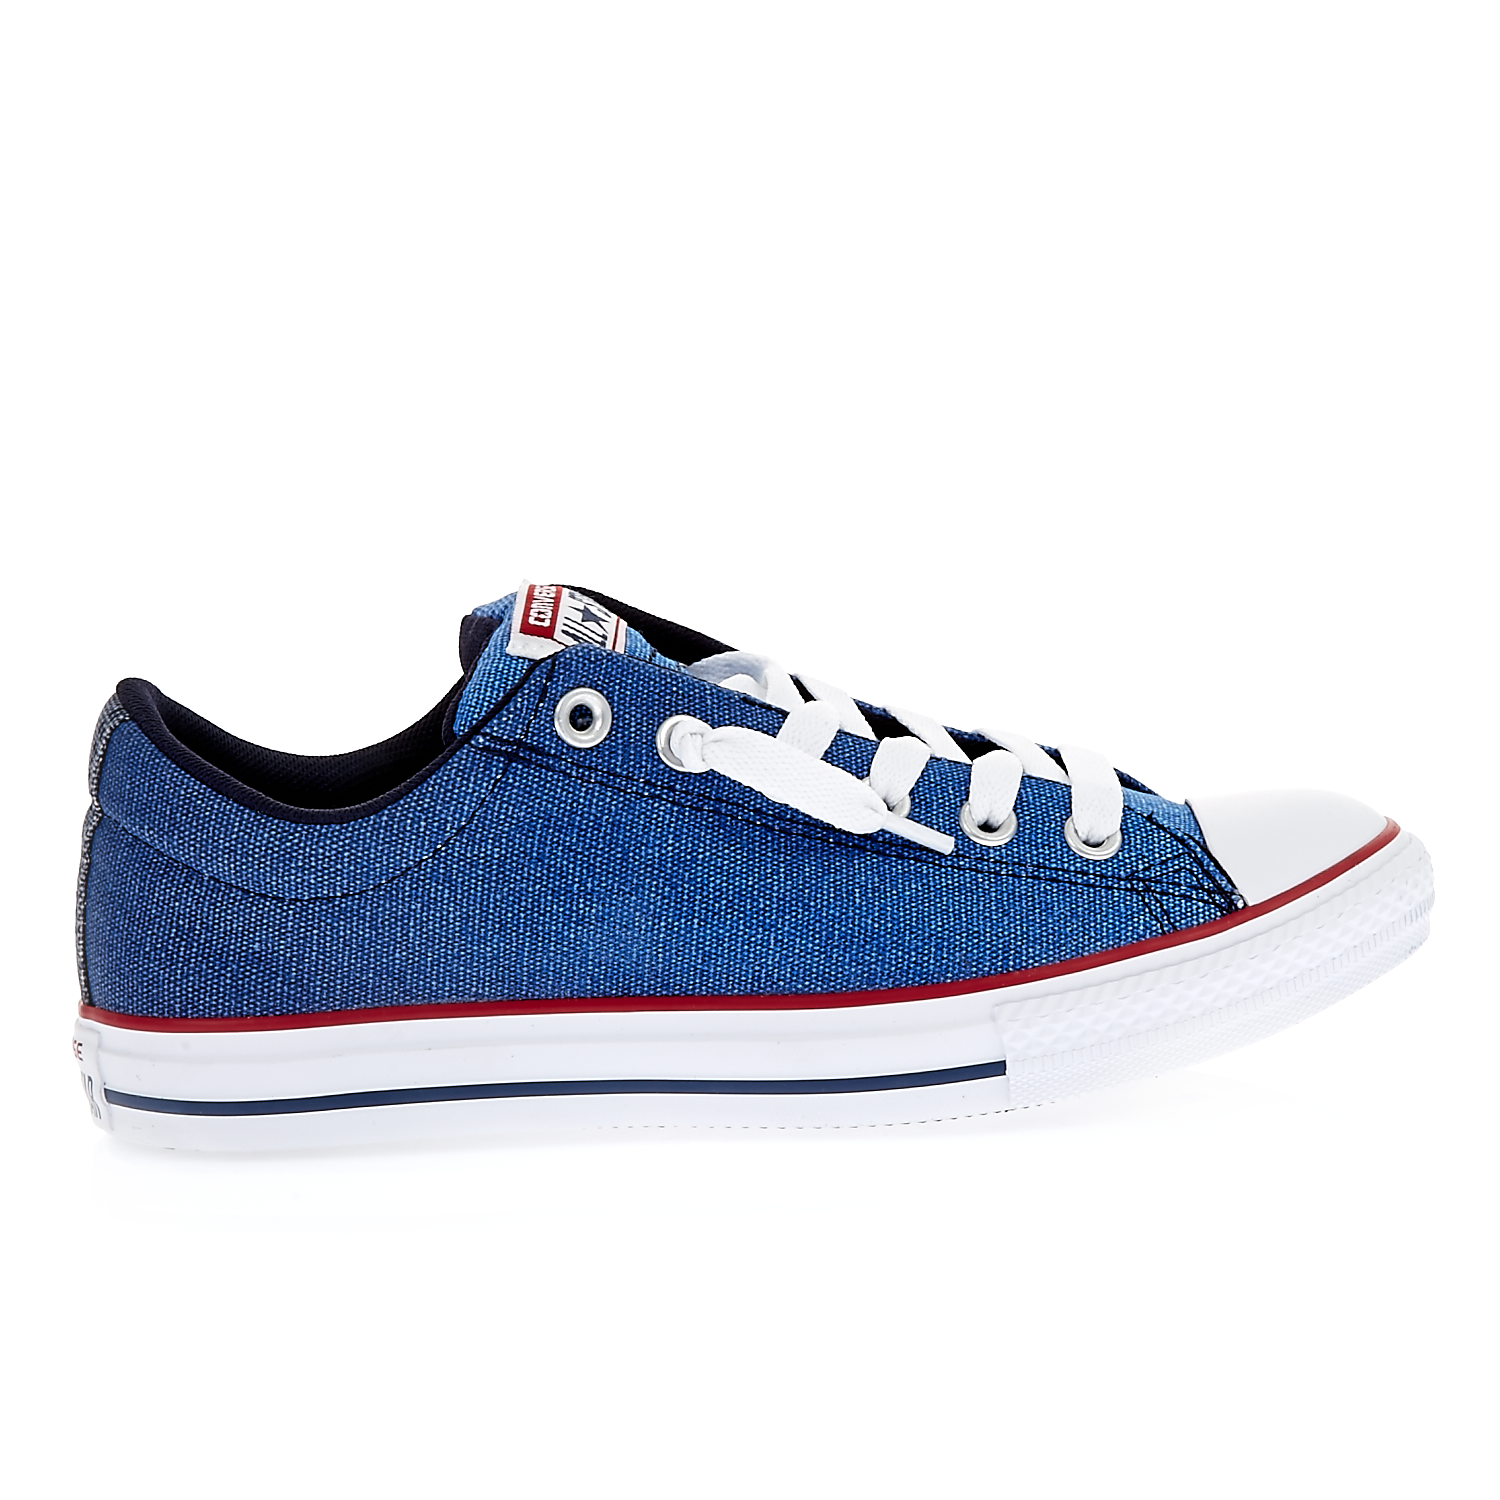 CONVERSE – Παιδικά παπούτσια Chuck Taylor All Star Street S μπλε.  Factoryoutlet f949e7c3854